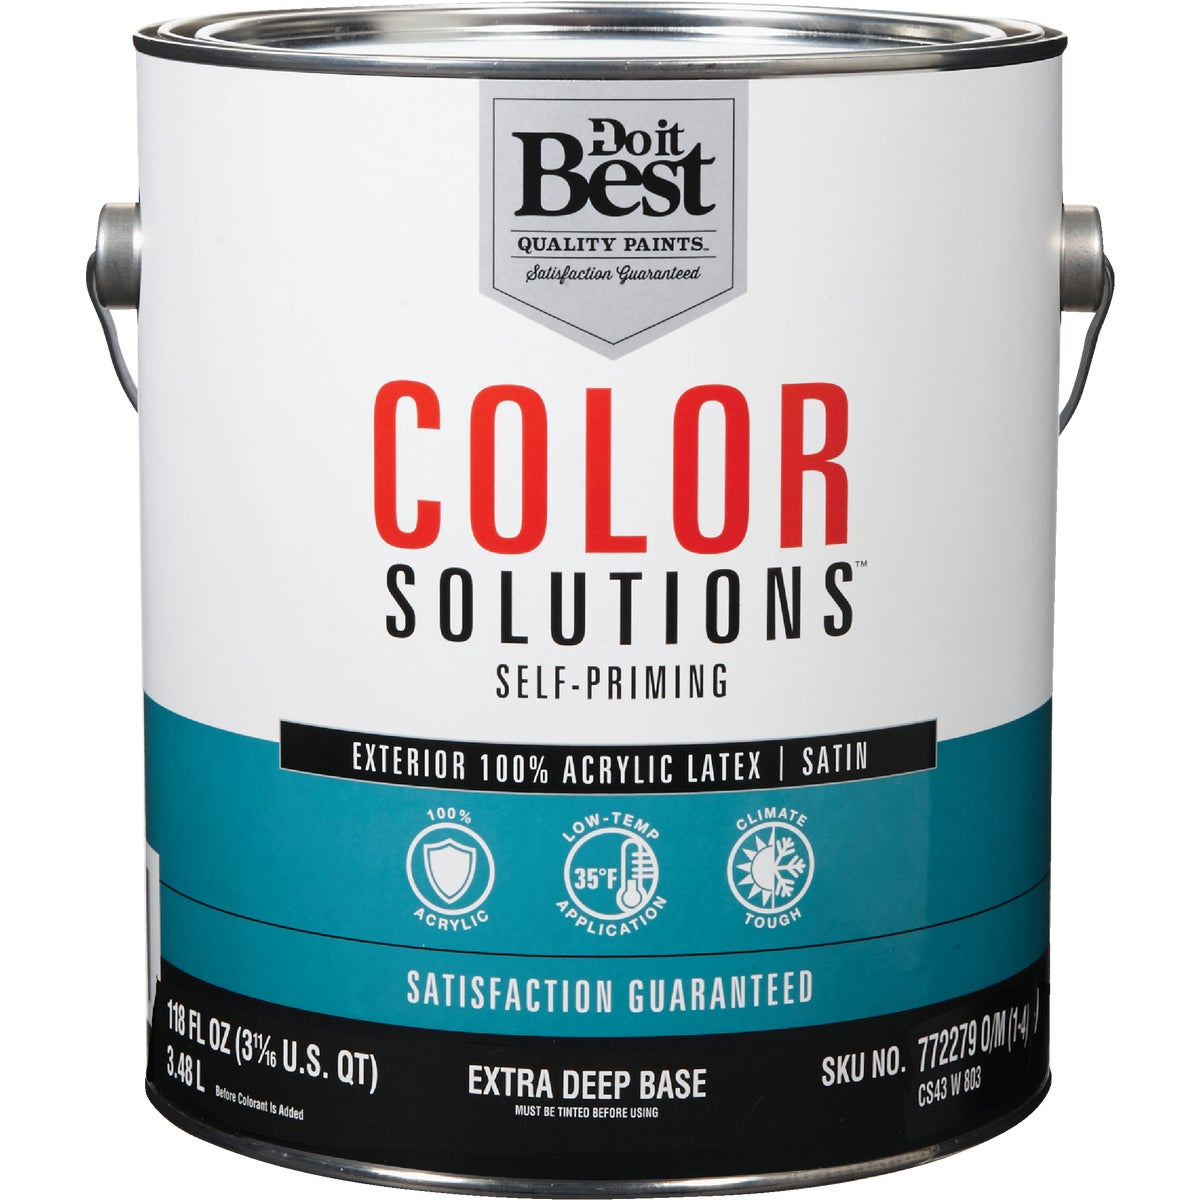 EXT SAT EX DEEP BS PAINT - CS43W0803-16 by Do it Best